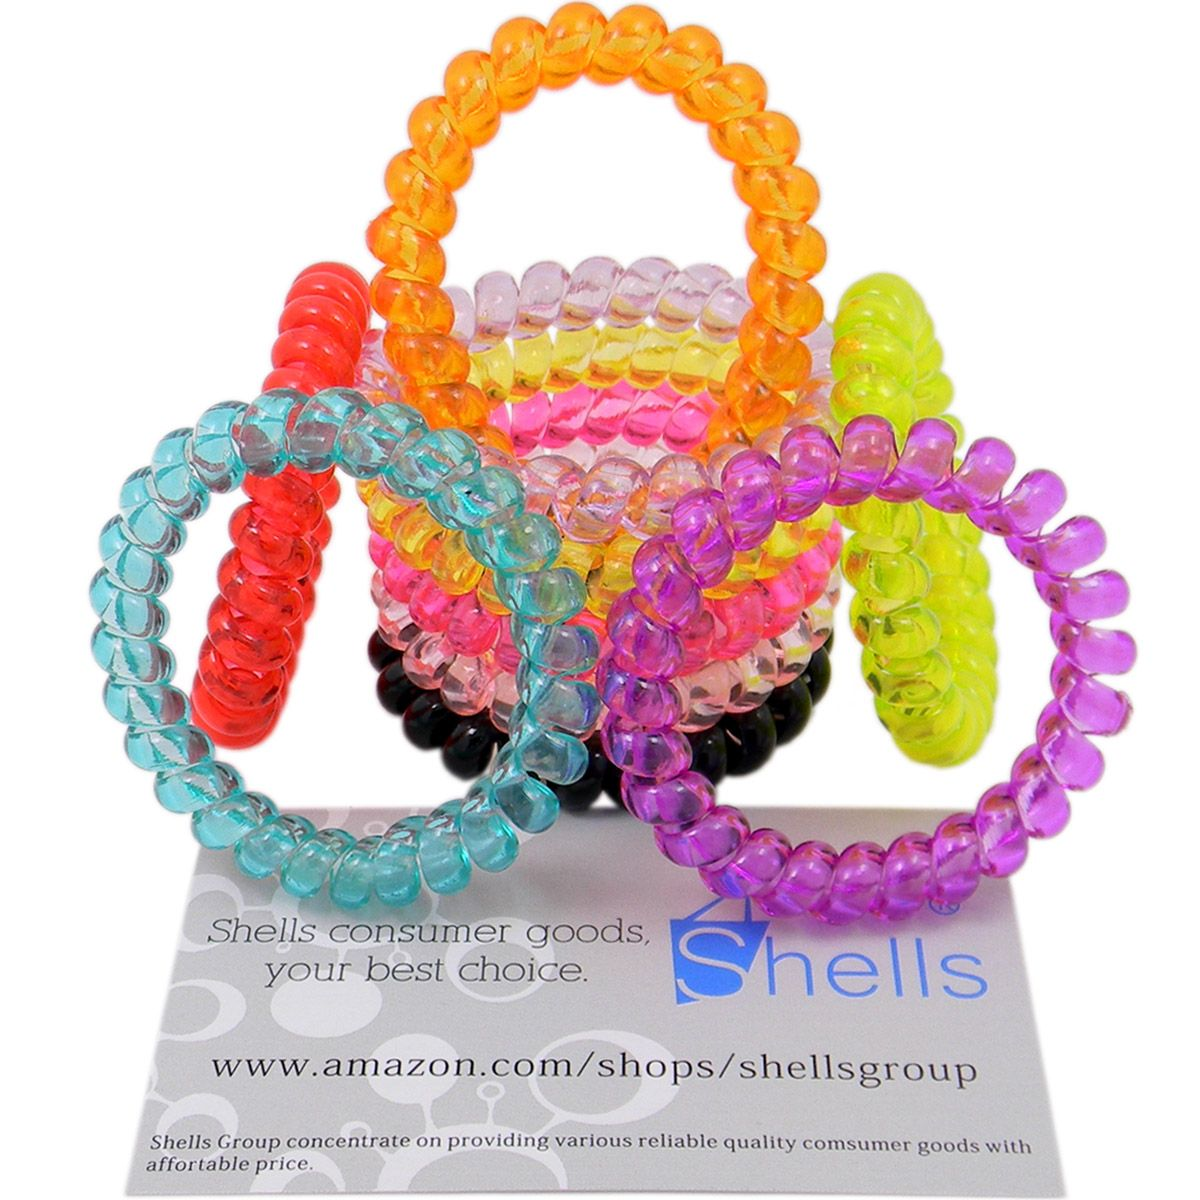 10pcs Multi Color Flexible Plastic Spiral Coil Phone Wire Hair Tie Rope Hairband Ring Clear